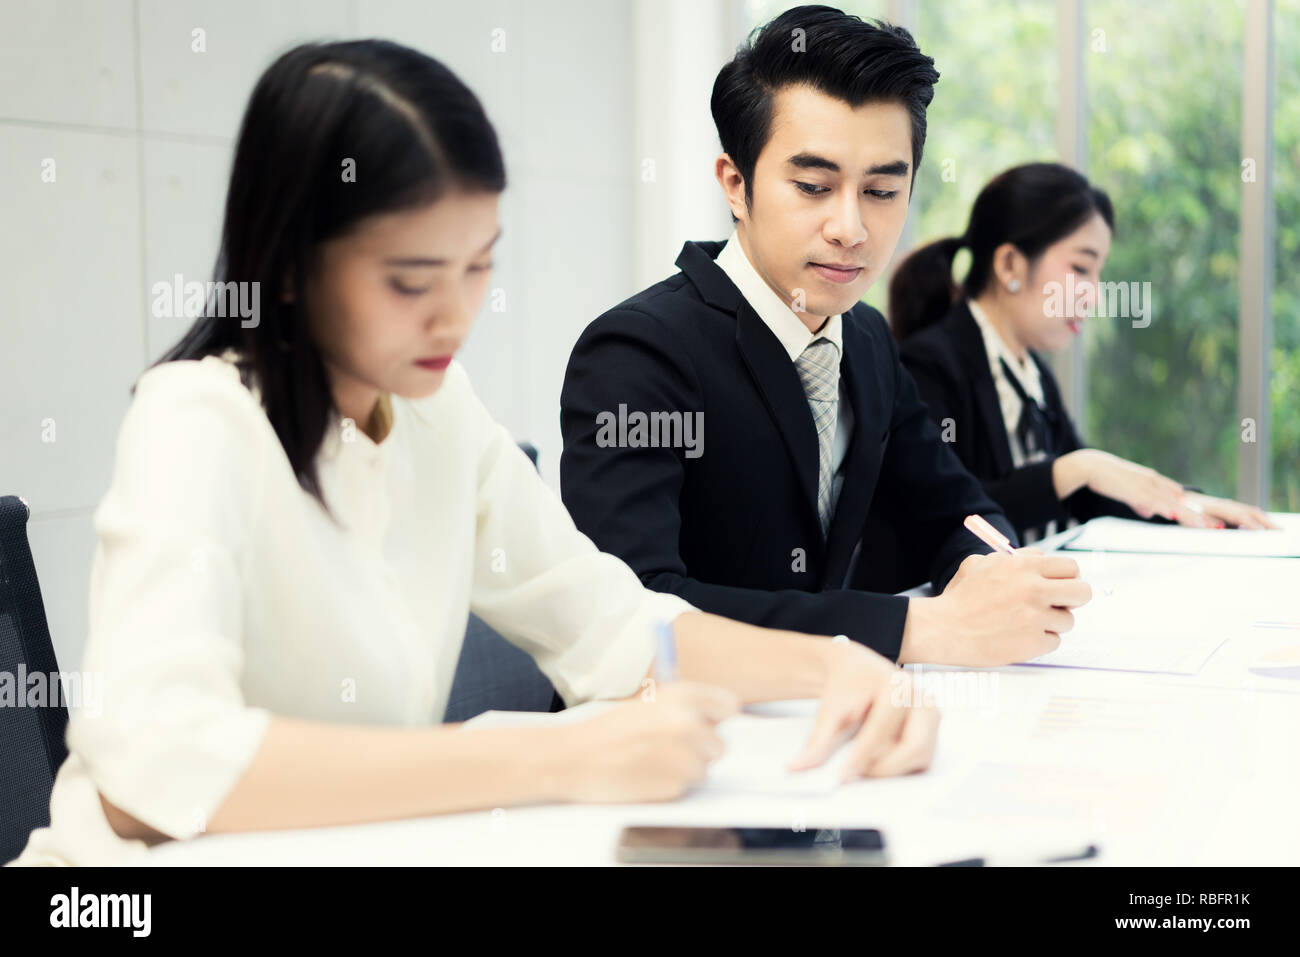 Inquisitive curious businessman with bad manners sneakly looking at report of businesswoman trying to steal idea of competitor, copying work at corpor Stock Photo